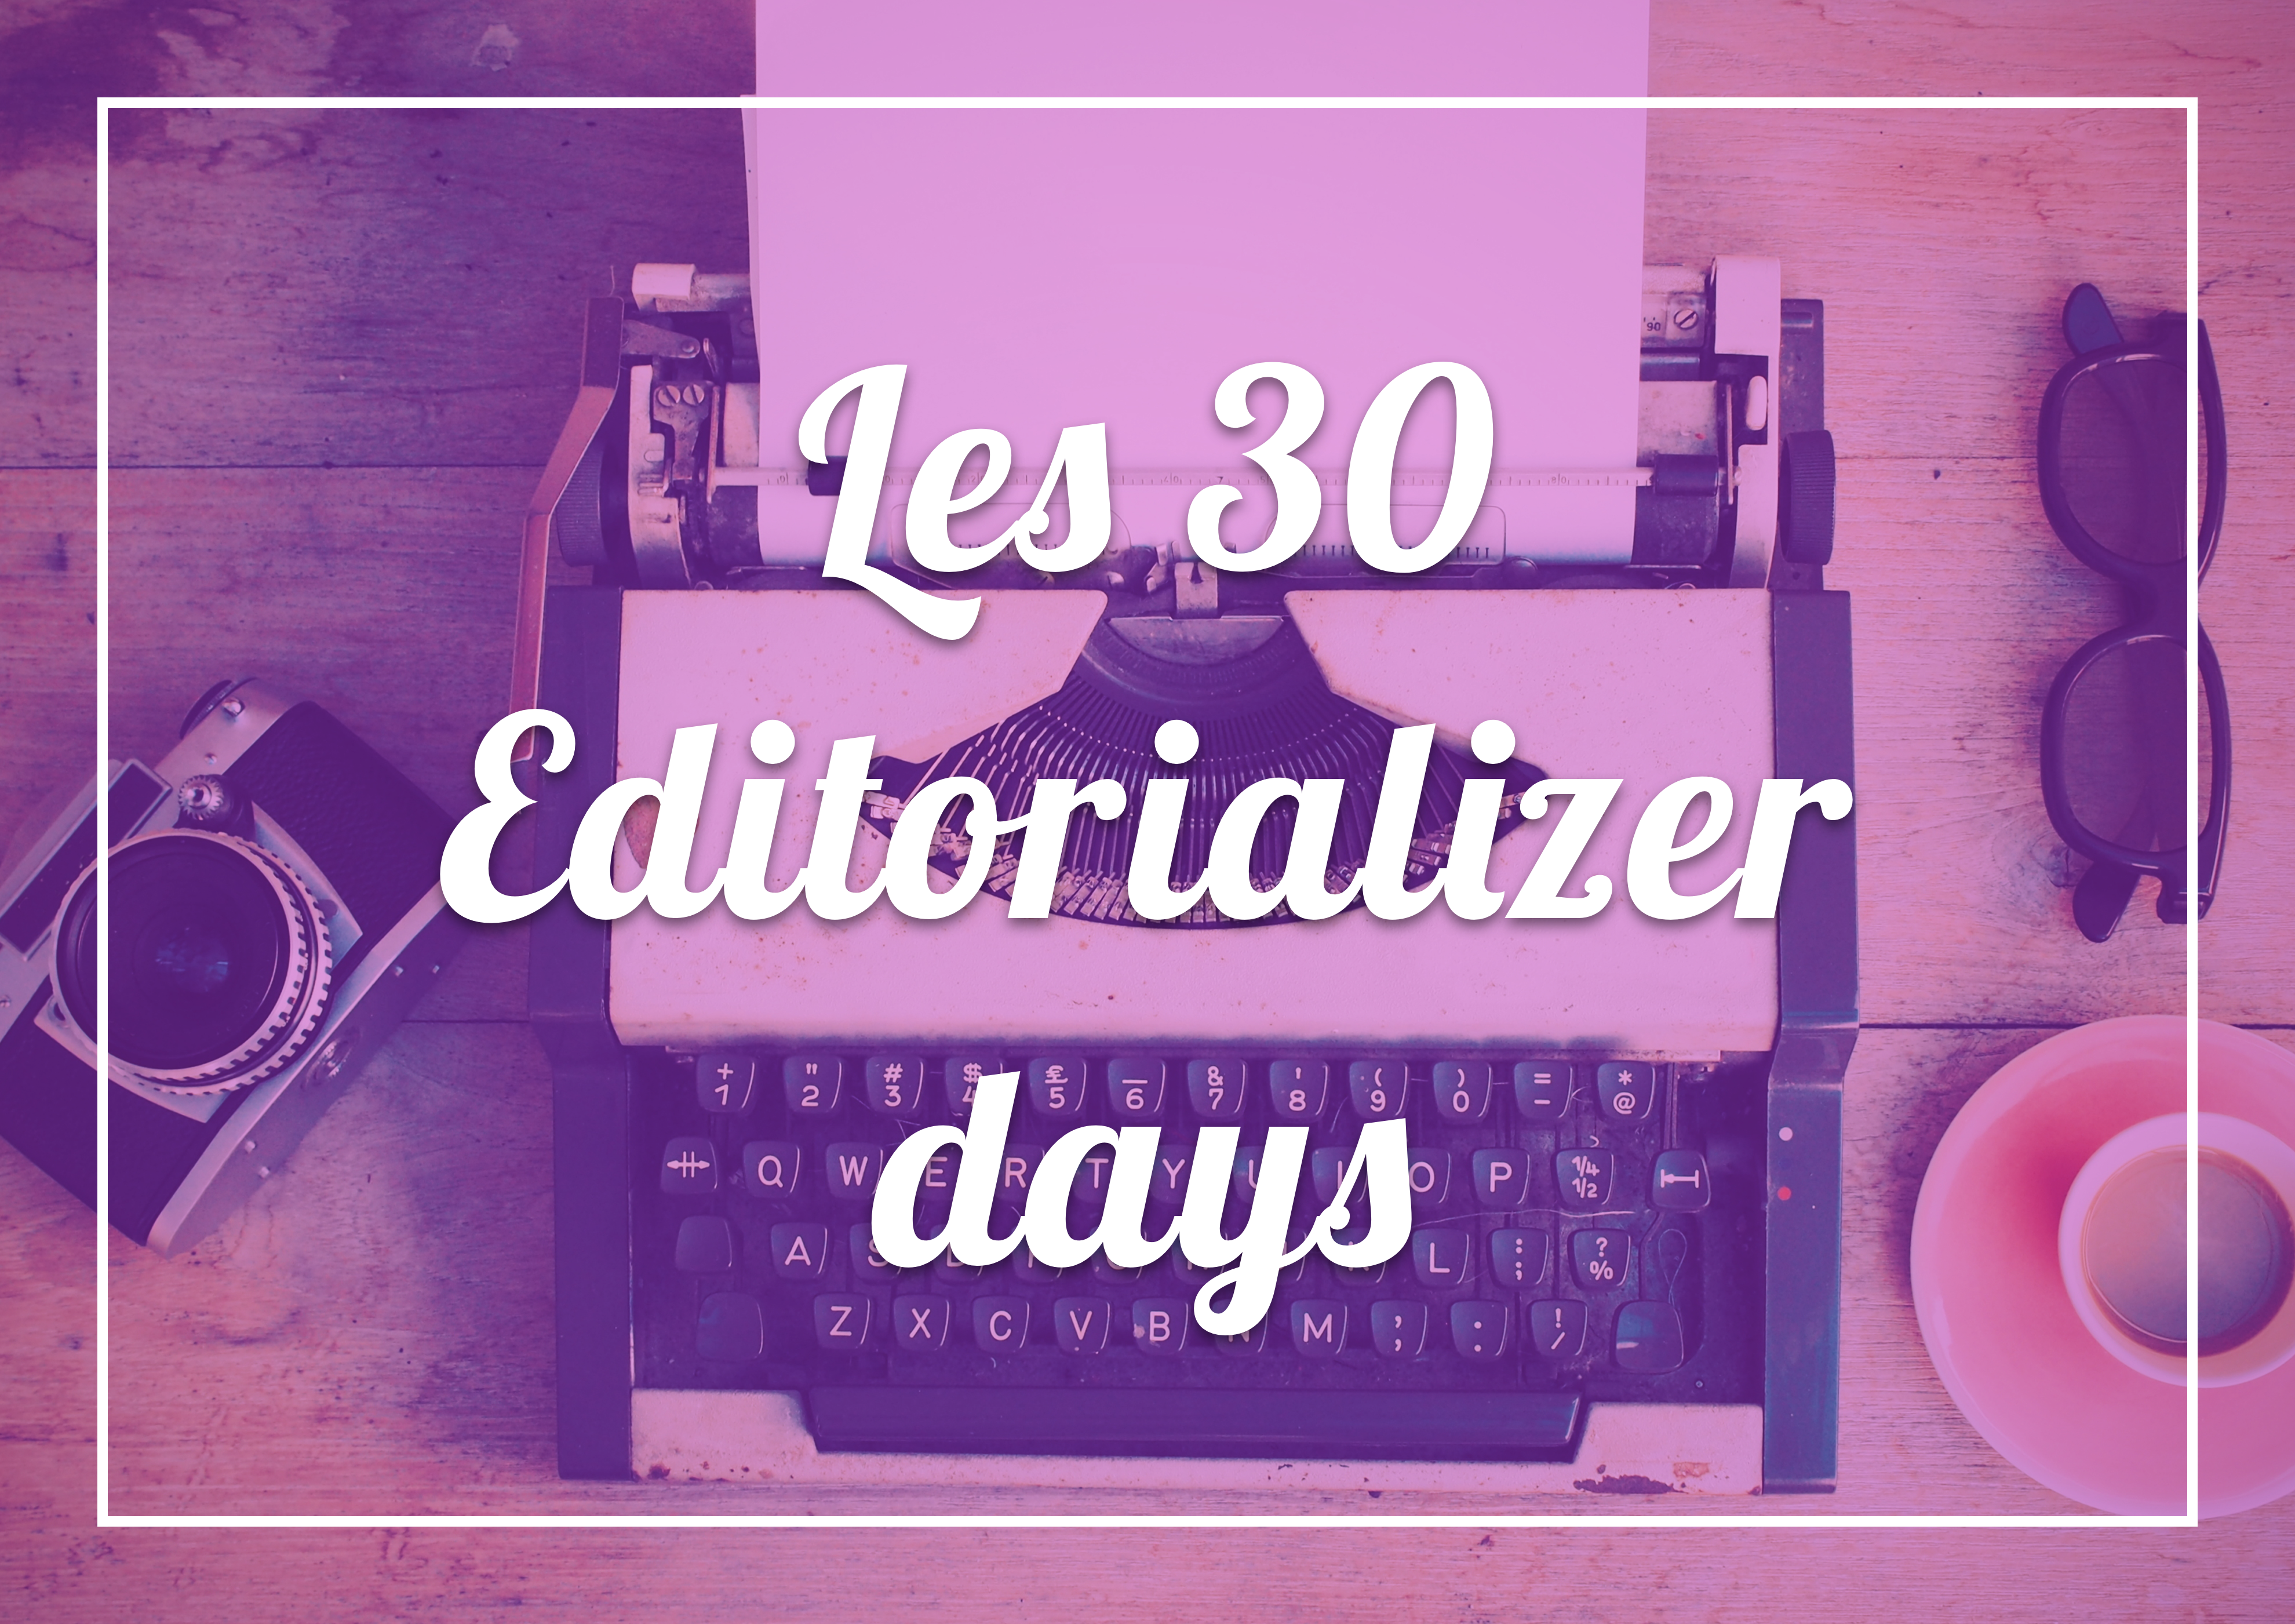 30 Editorializer Days